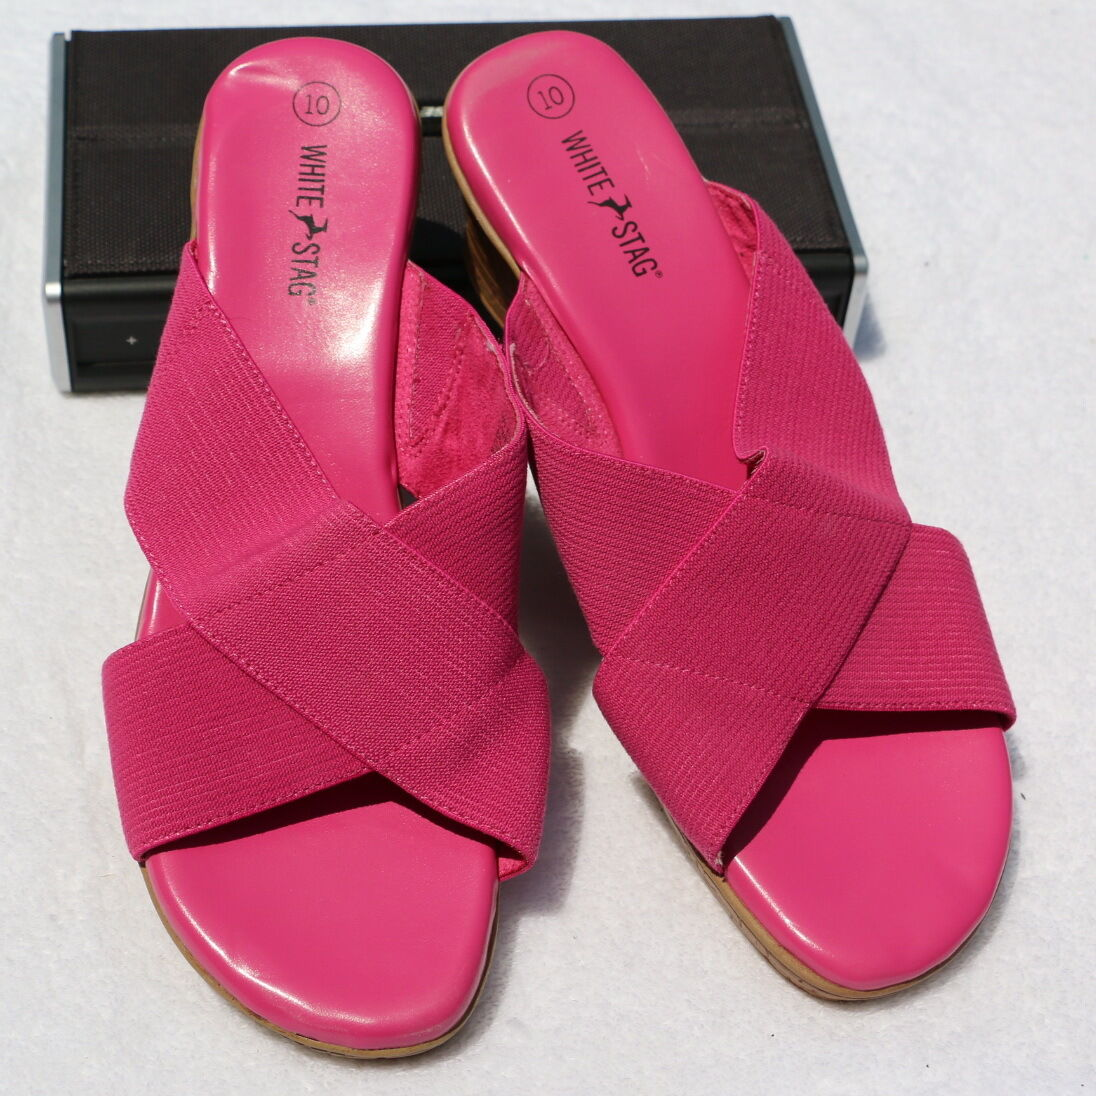 EUC Wedge White Stag Sz 10 Wedge EUC Slide Women's Sandals Pink Mid Heel Open Toe Slip-On b9a5ac